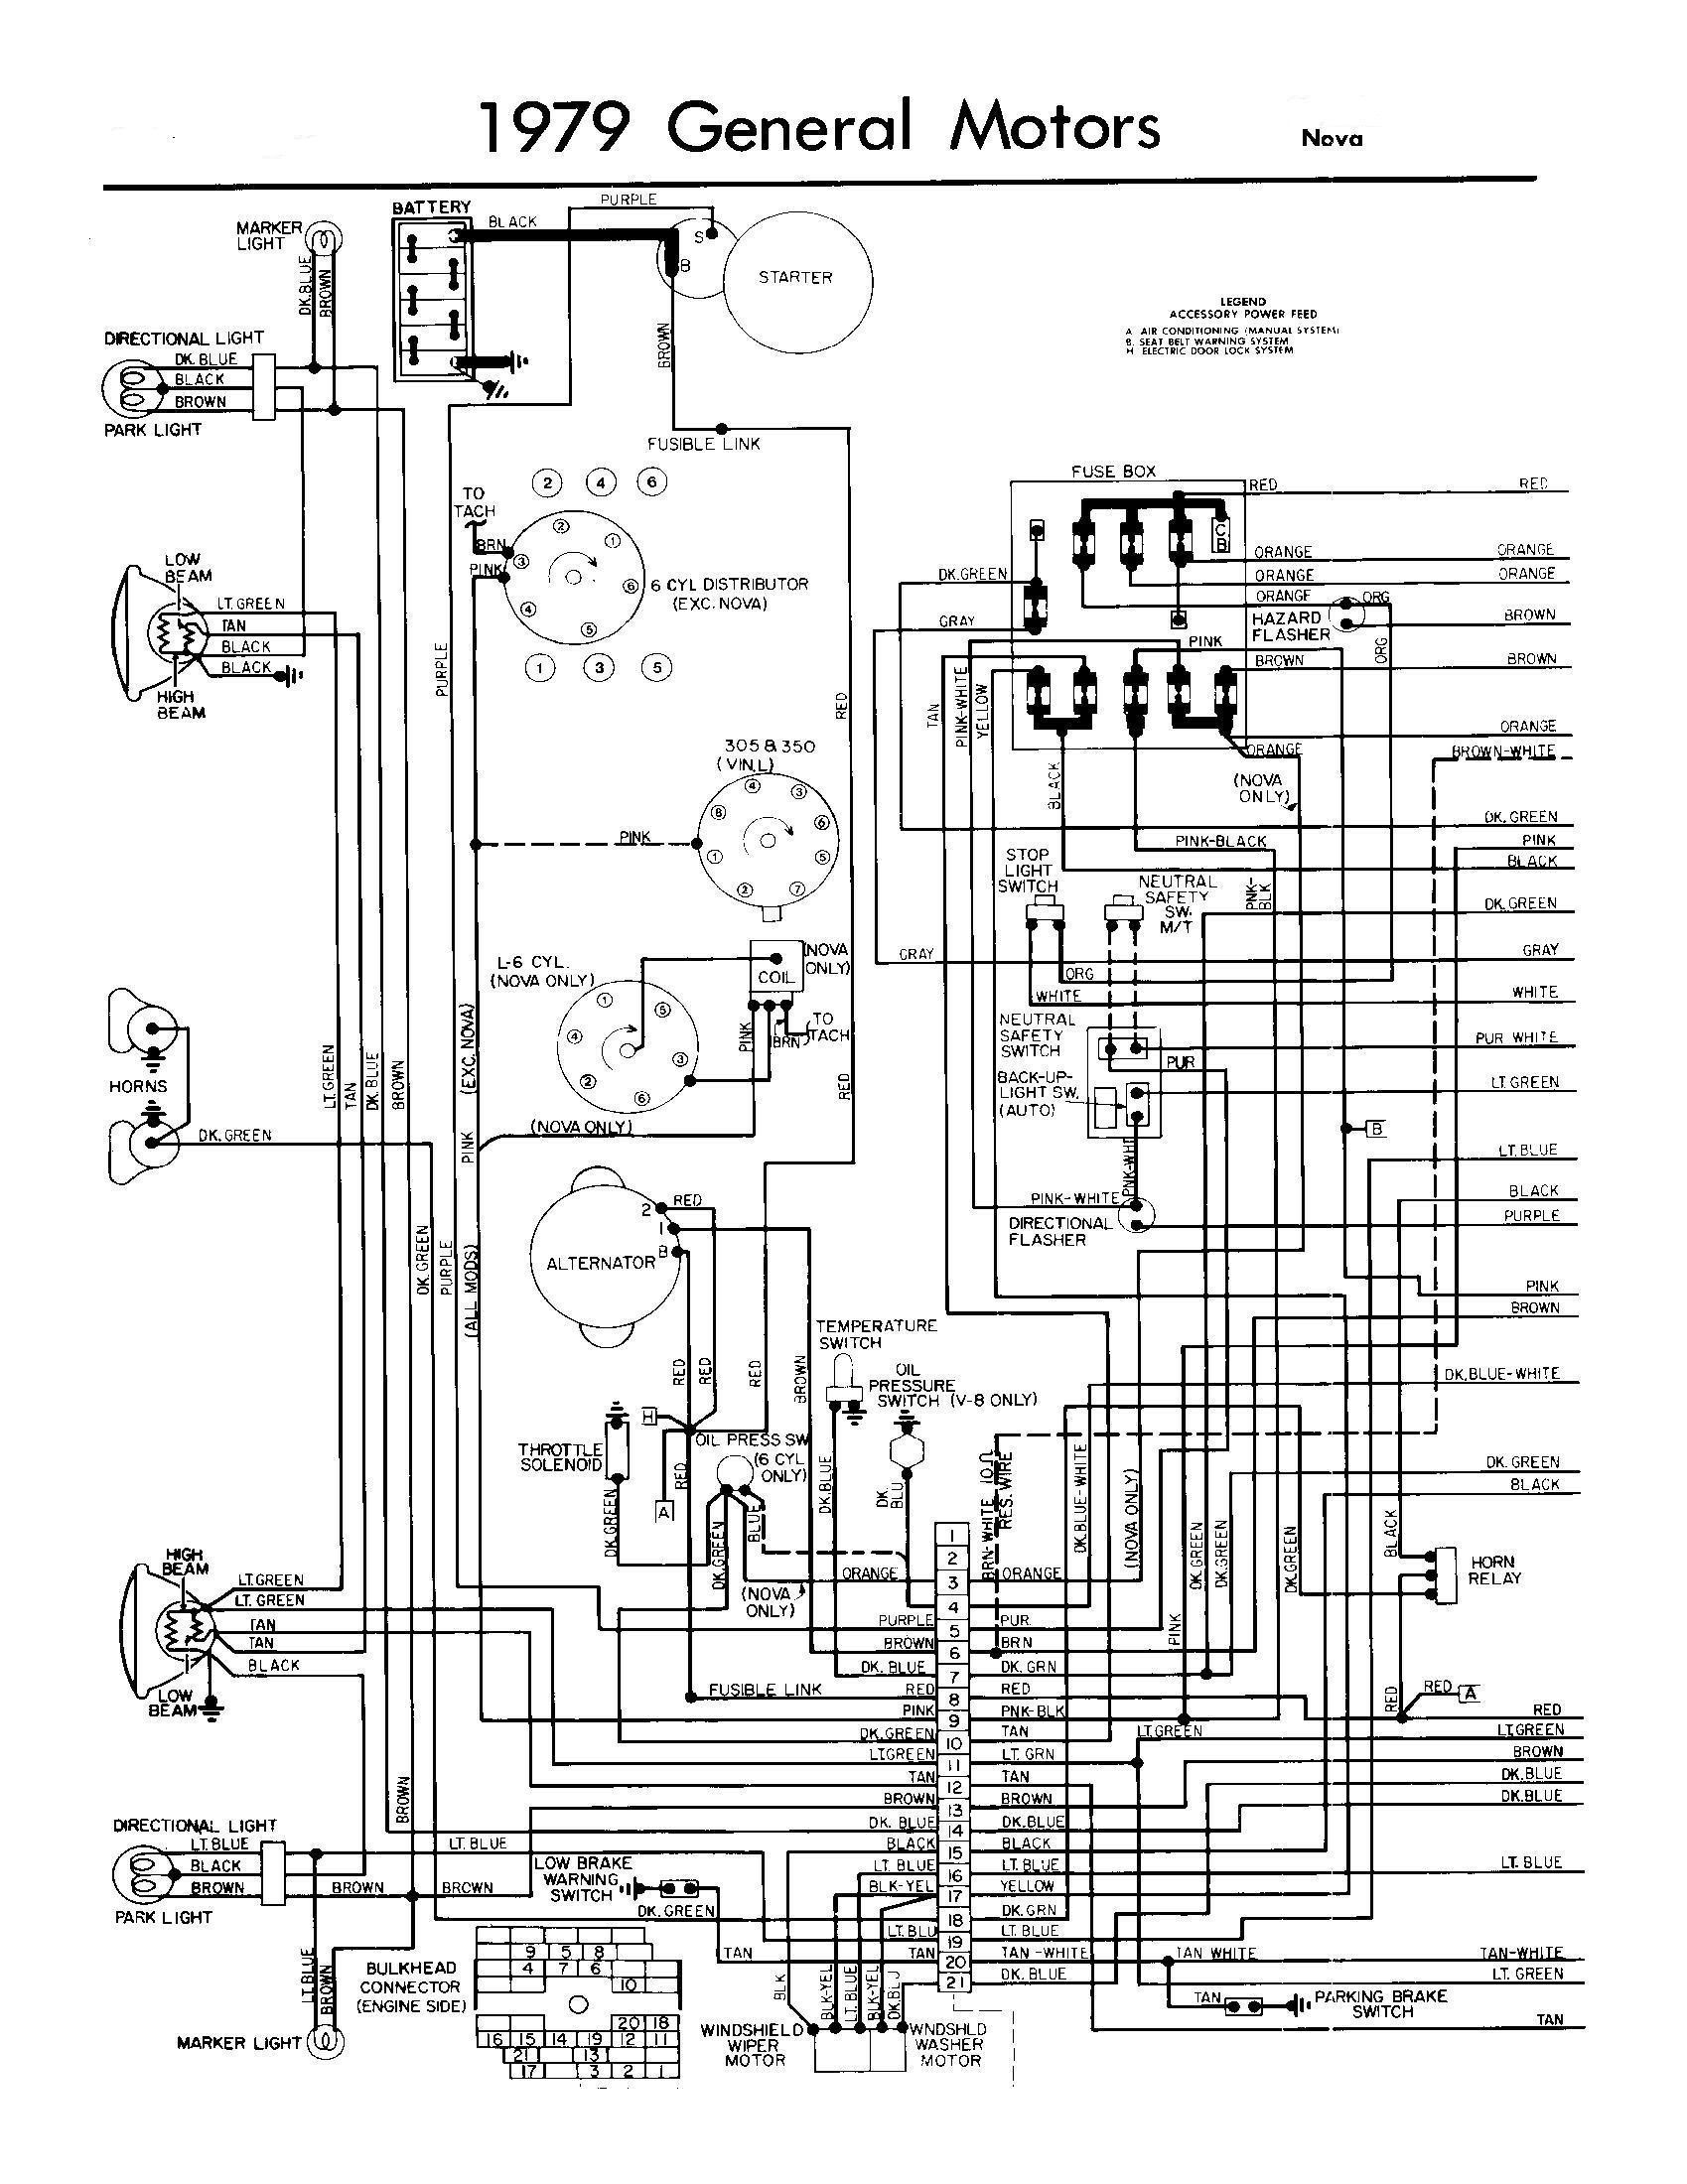 Vw Alternator Conversion Wiring Diagram - Cs-hacks.com